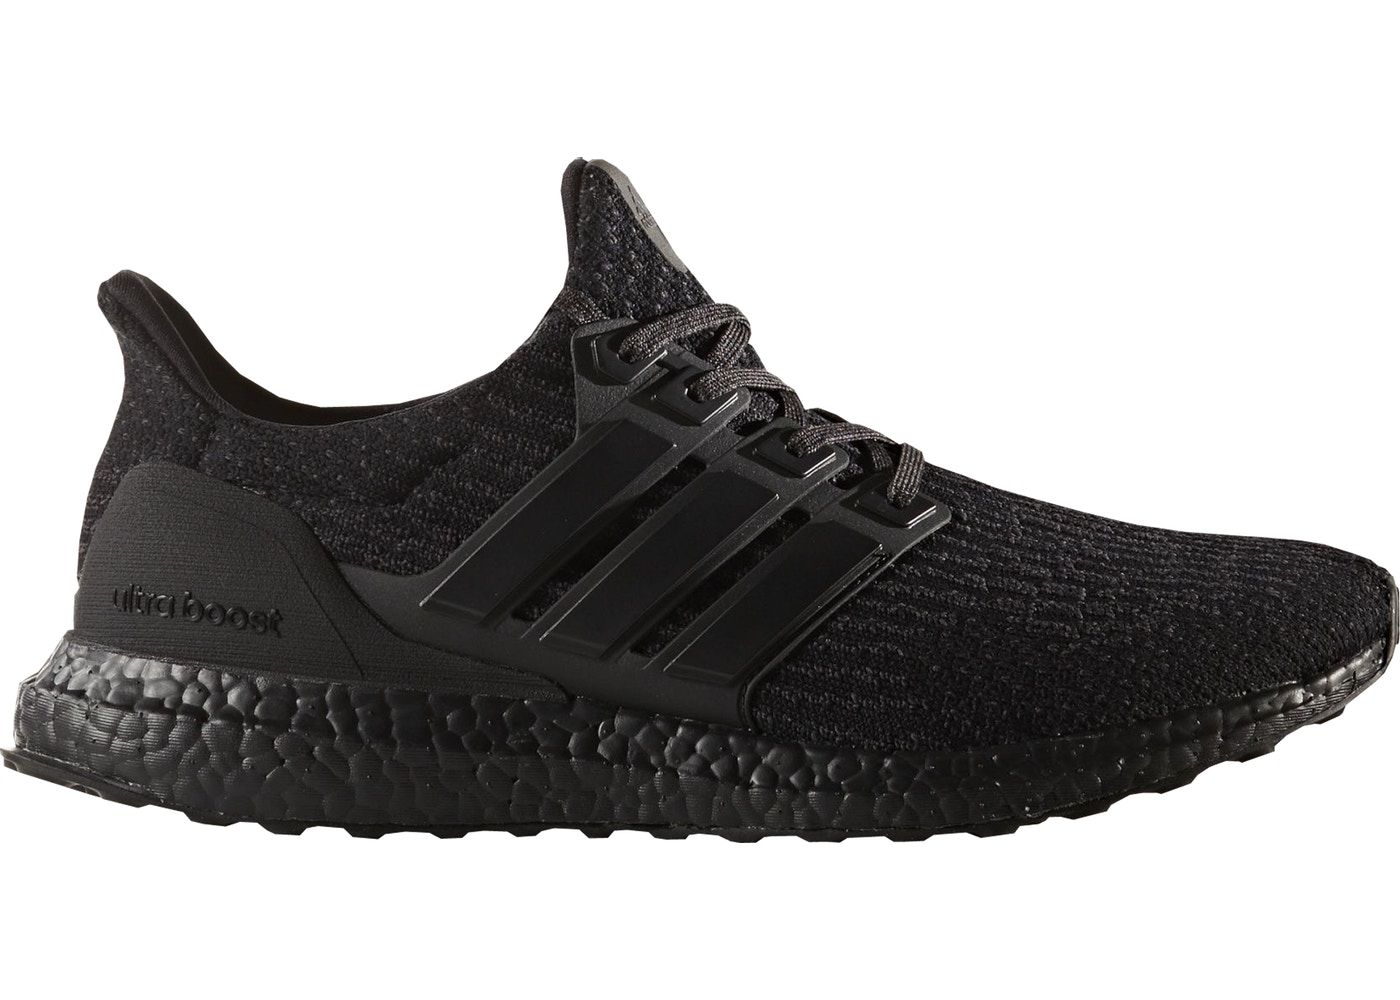 eea1993e2ae adidas Ultra Boost 3.0 Triple Black 2.0 - CG3038